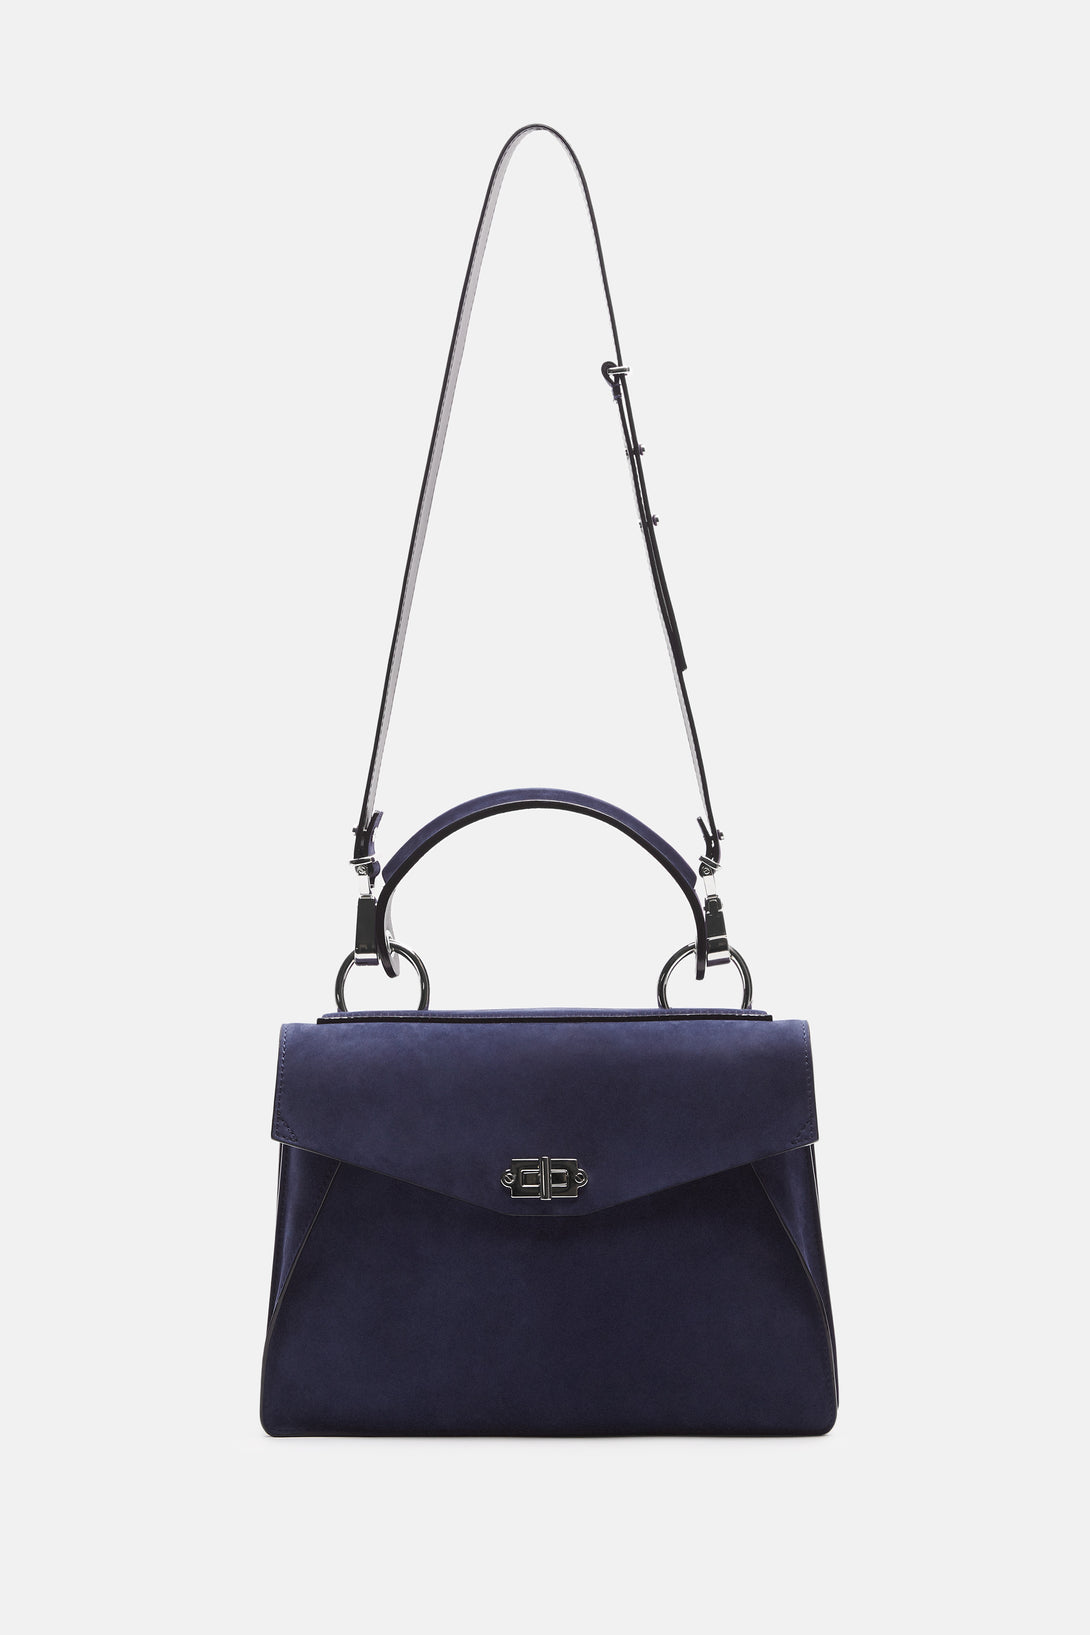 Medium Hava Top Handle Bag - Indigo